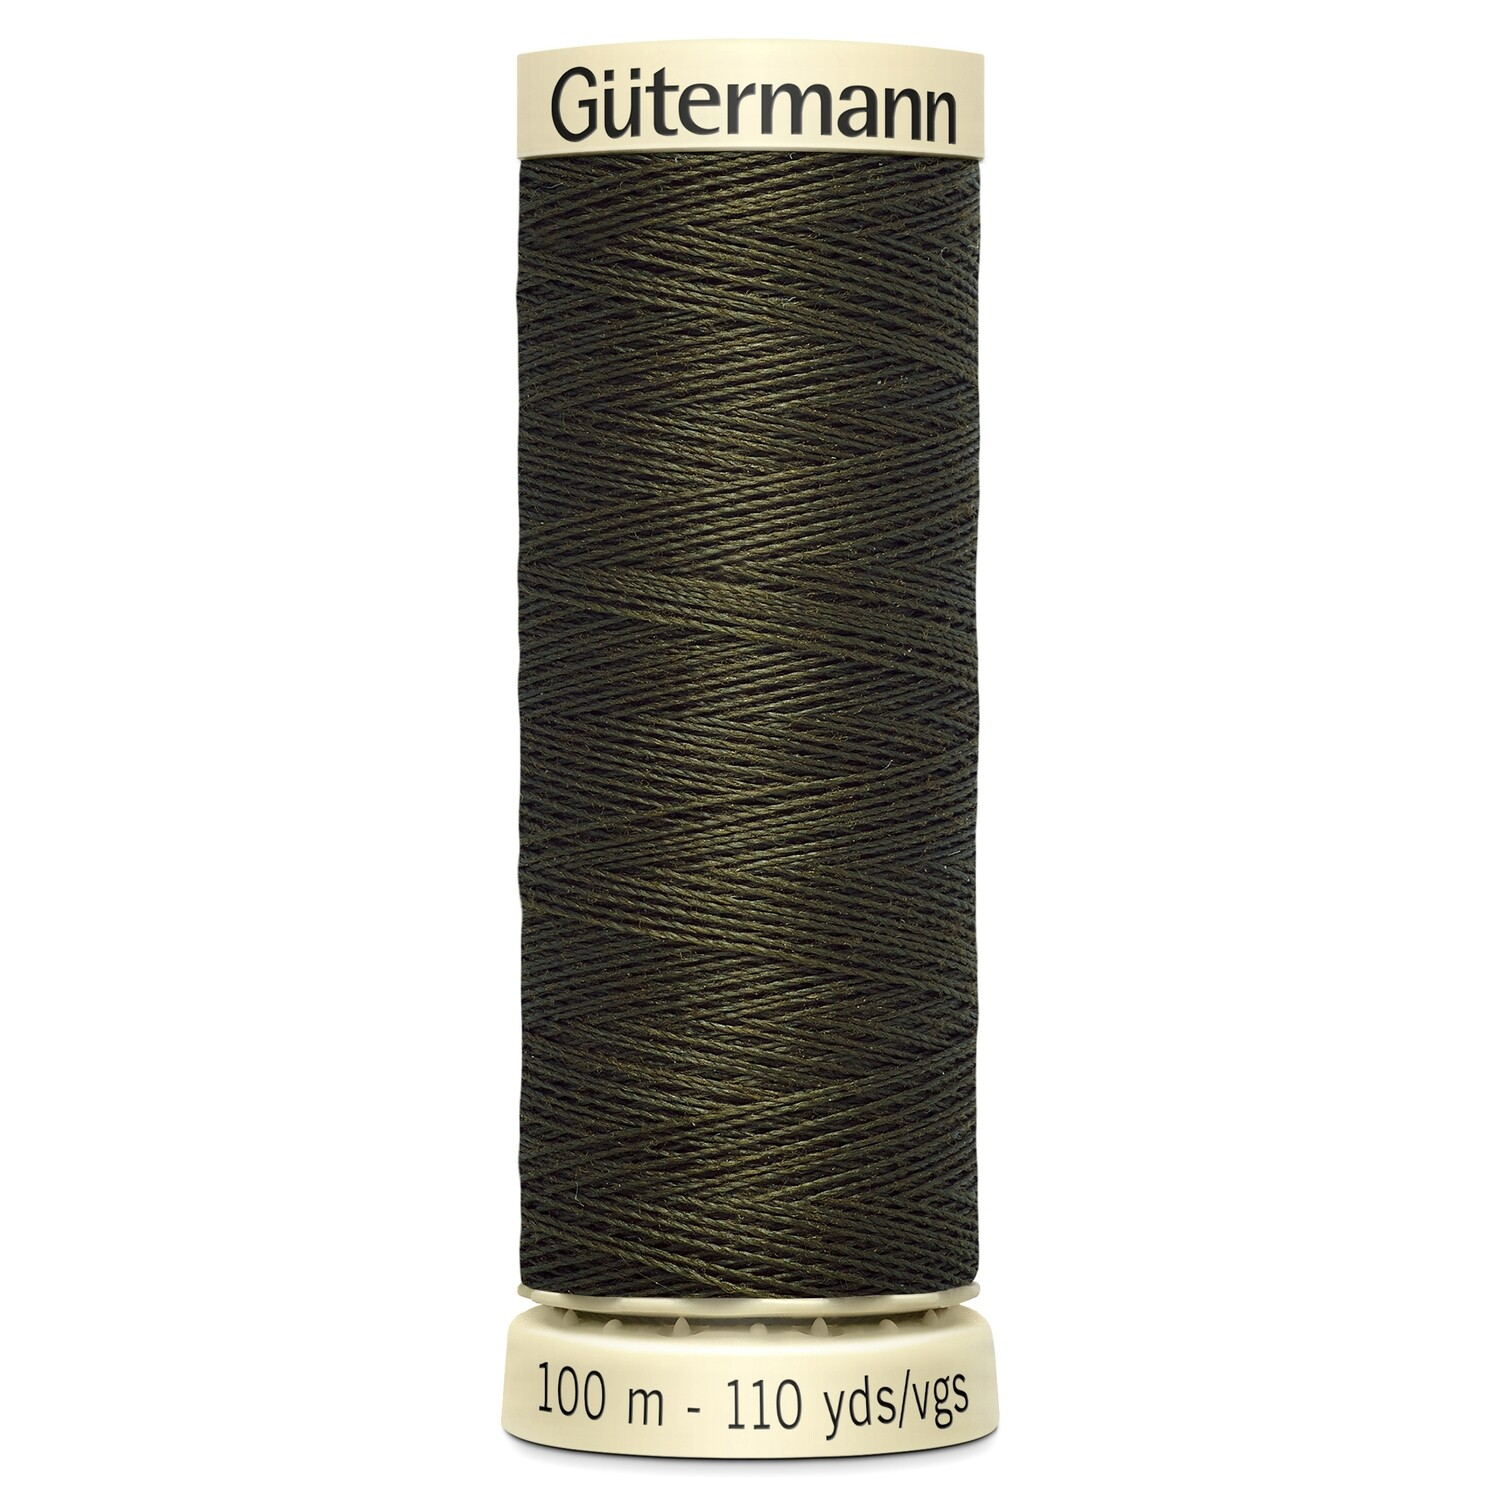 Gutermann Sew-All thread 531